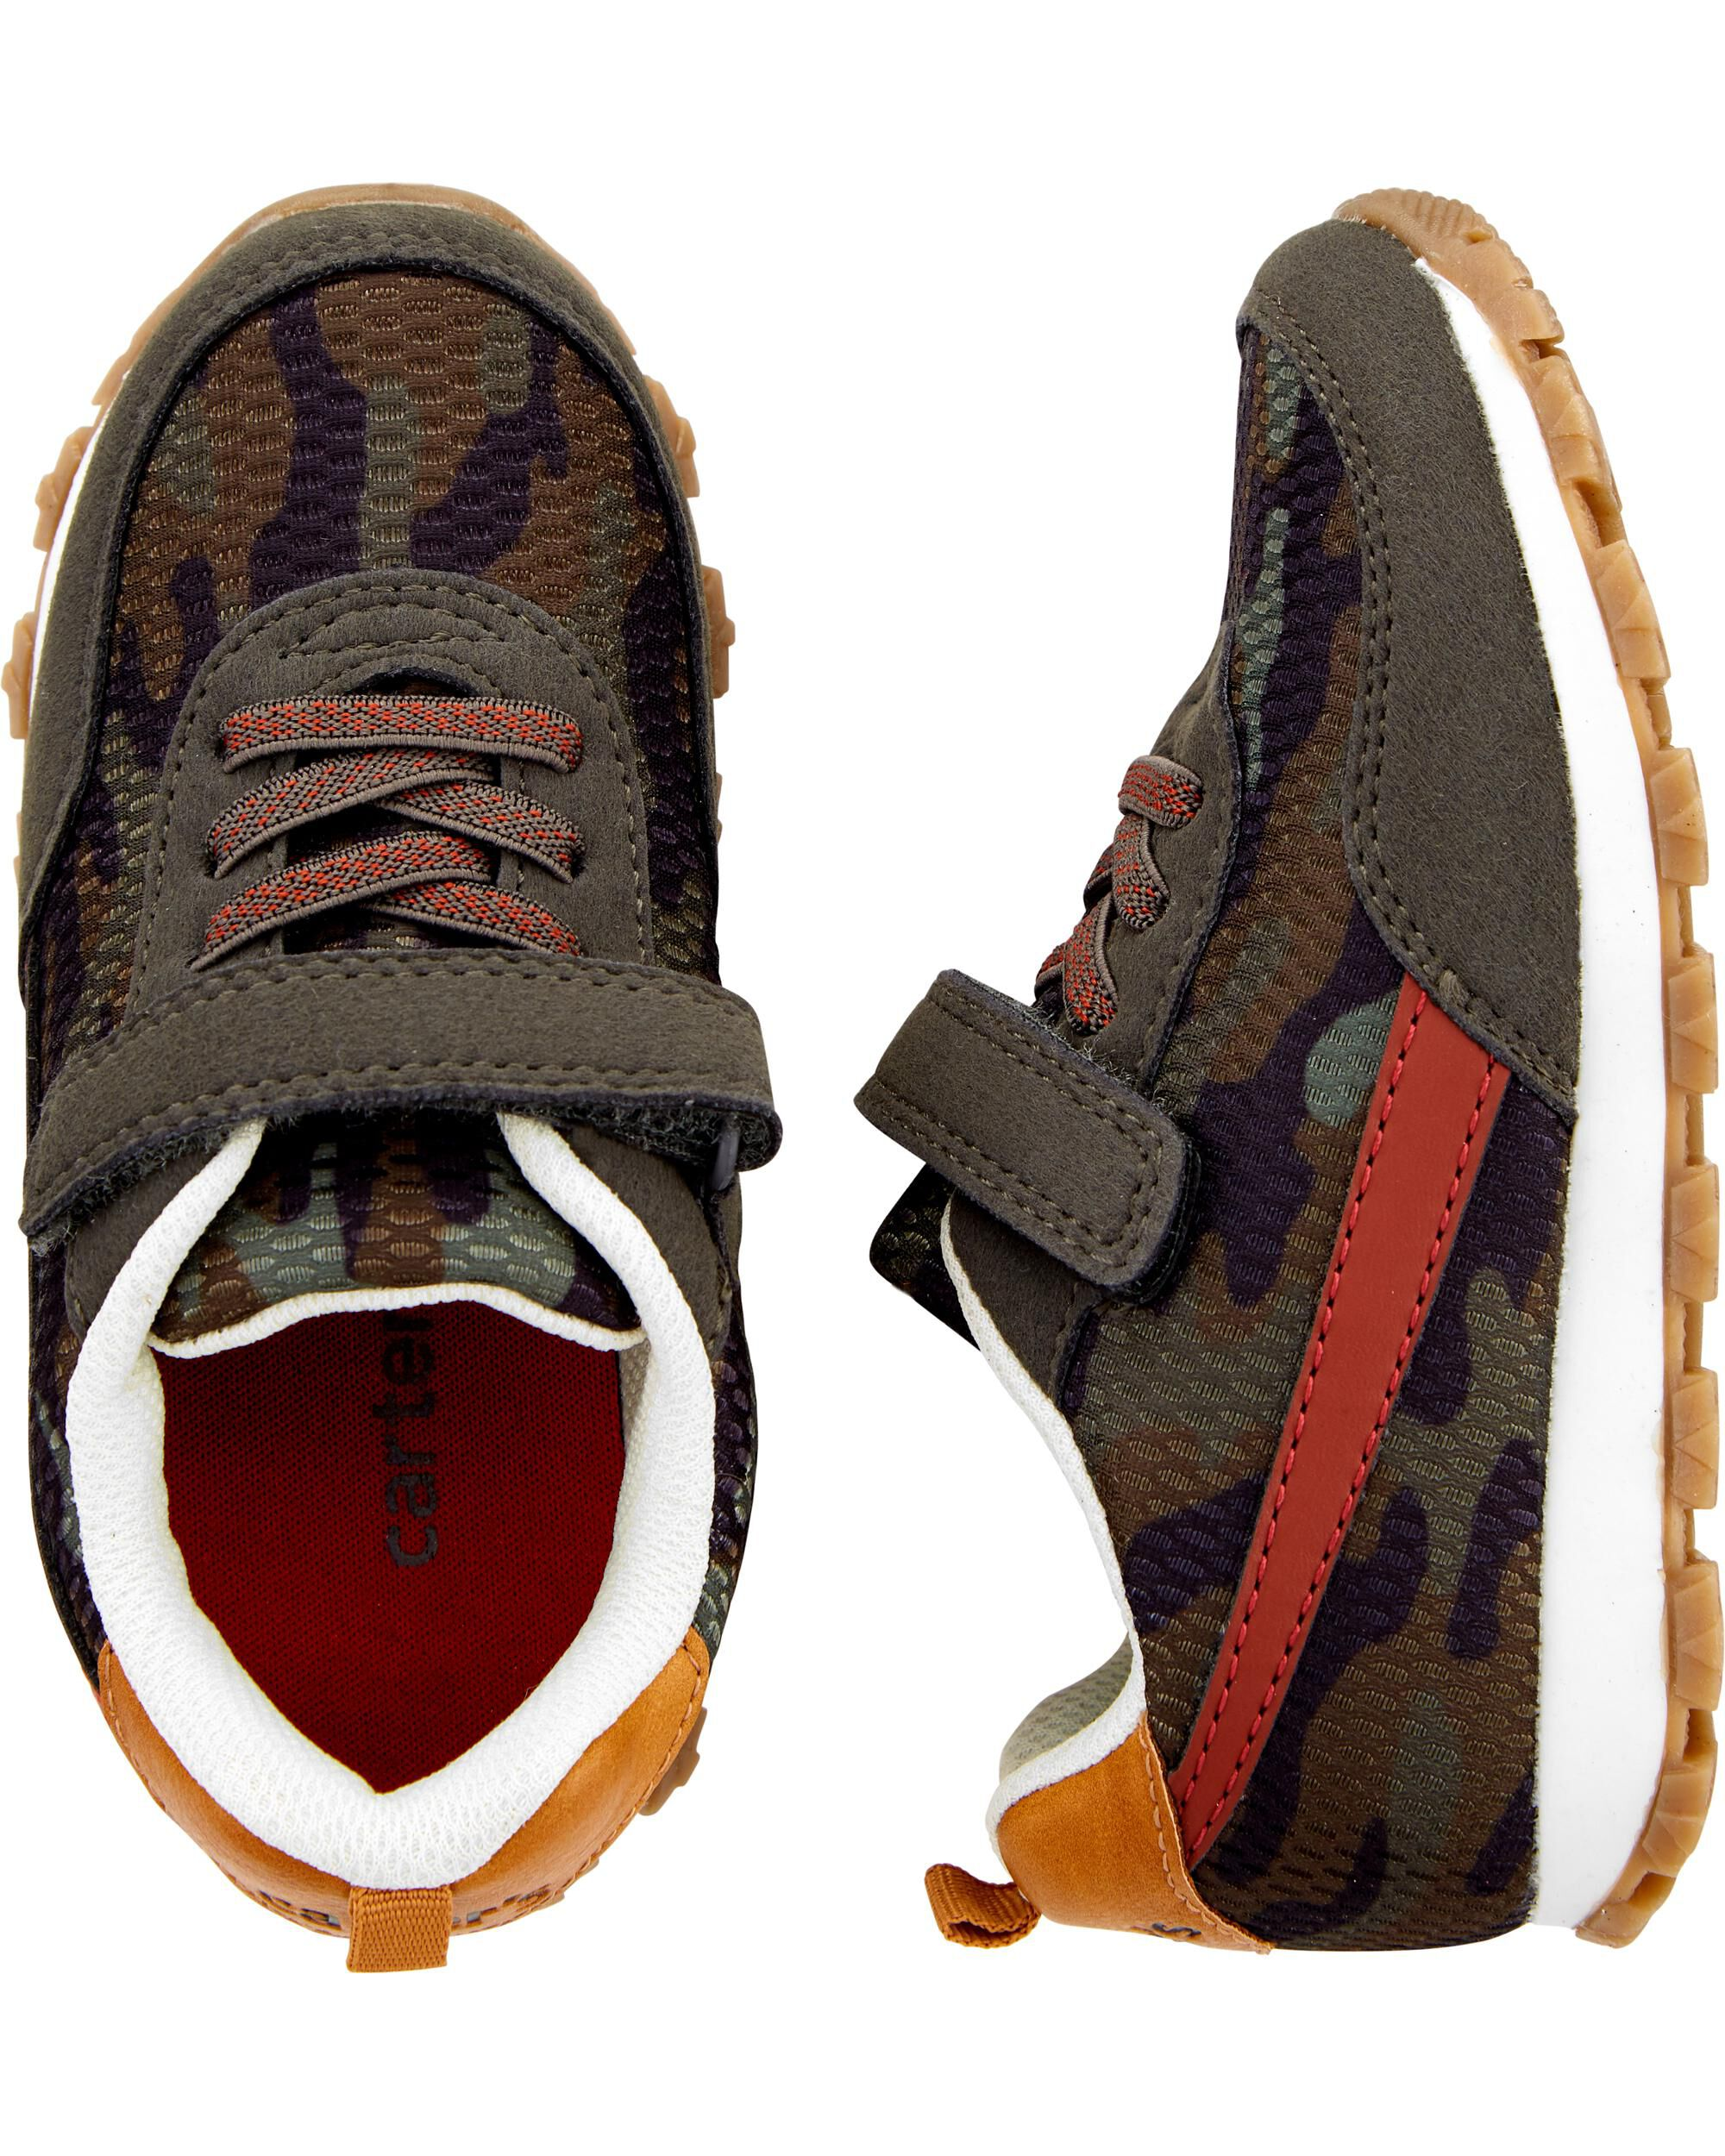 *CLEARANCE* Carter's Athletic Sneakers